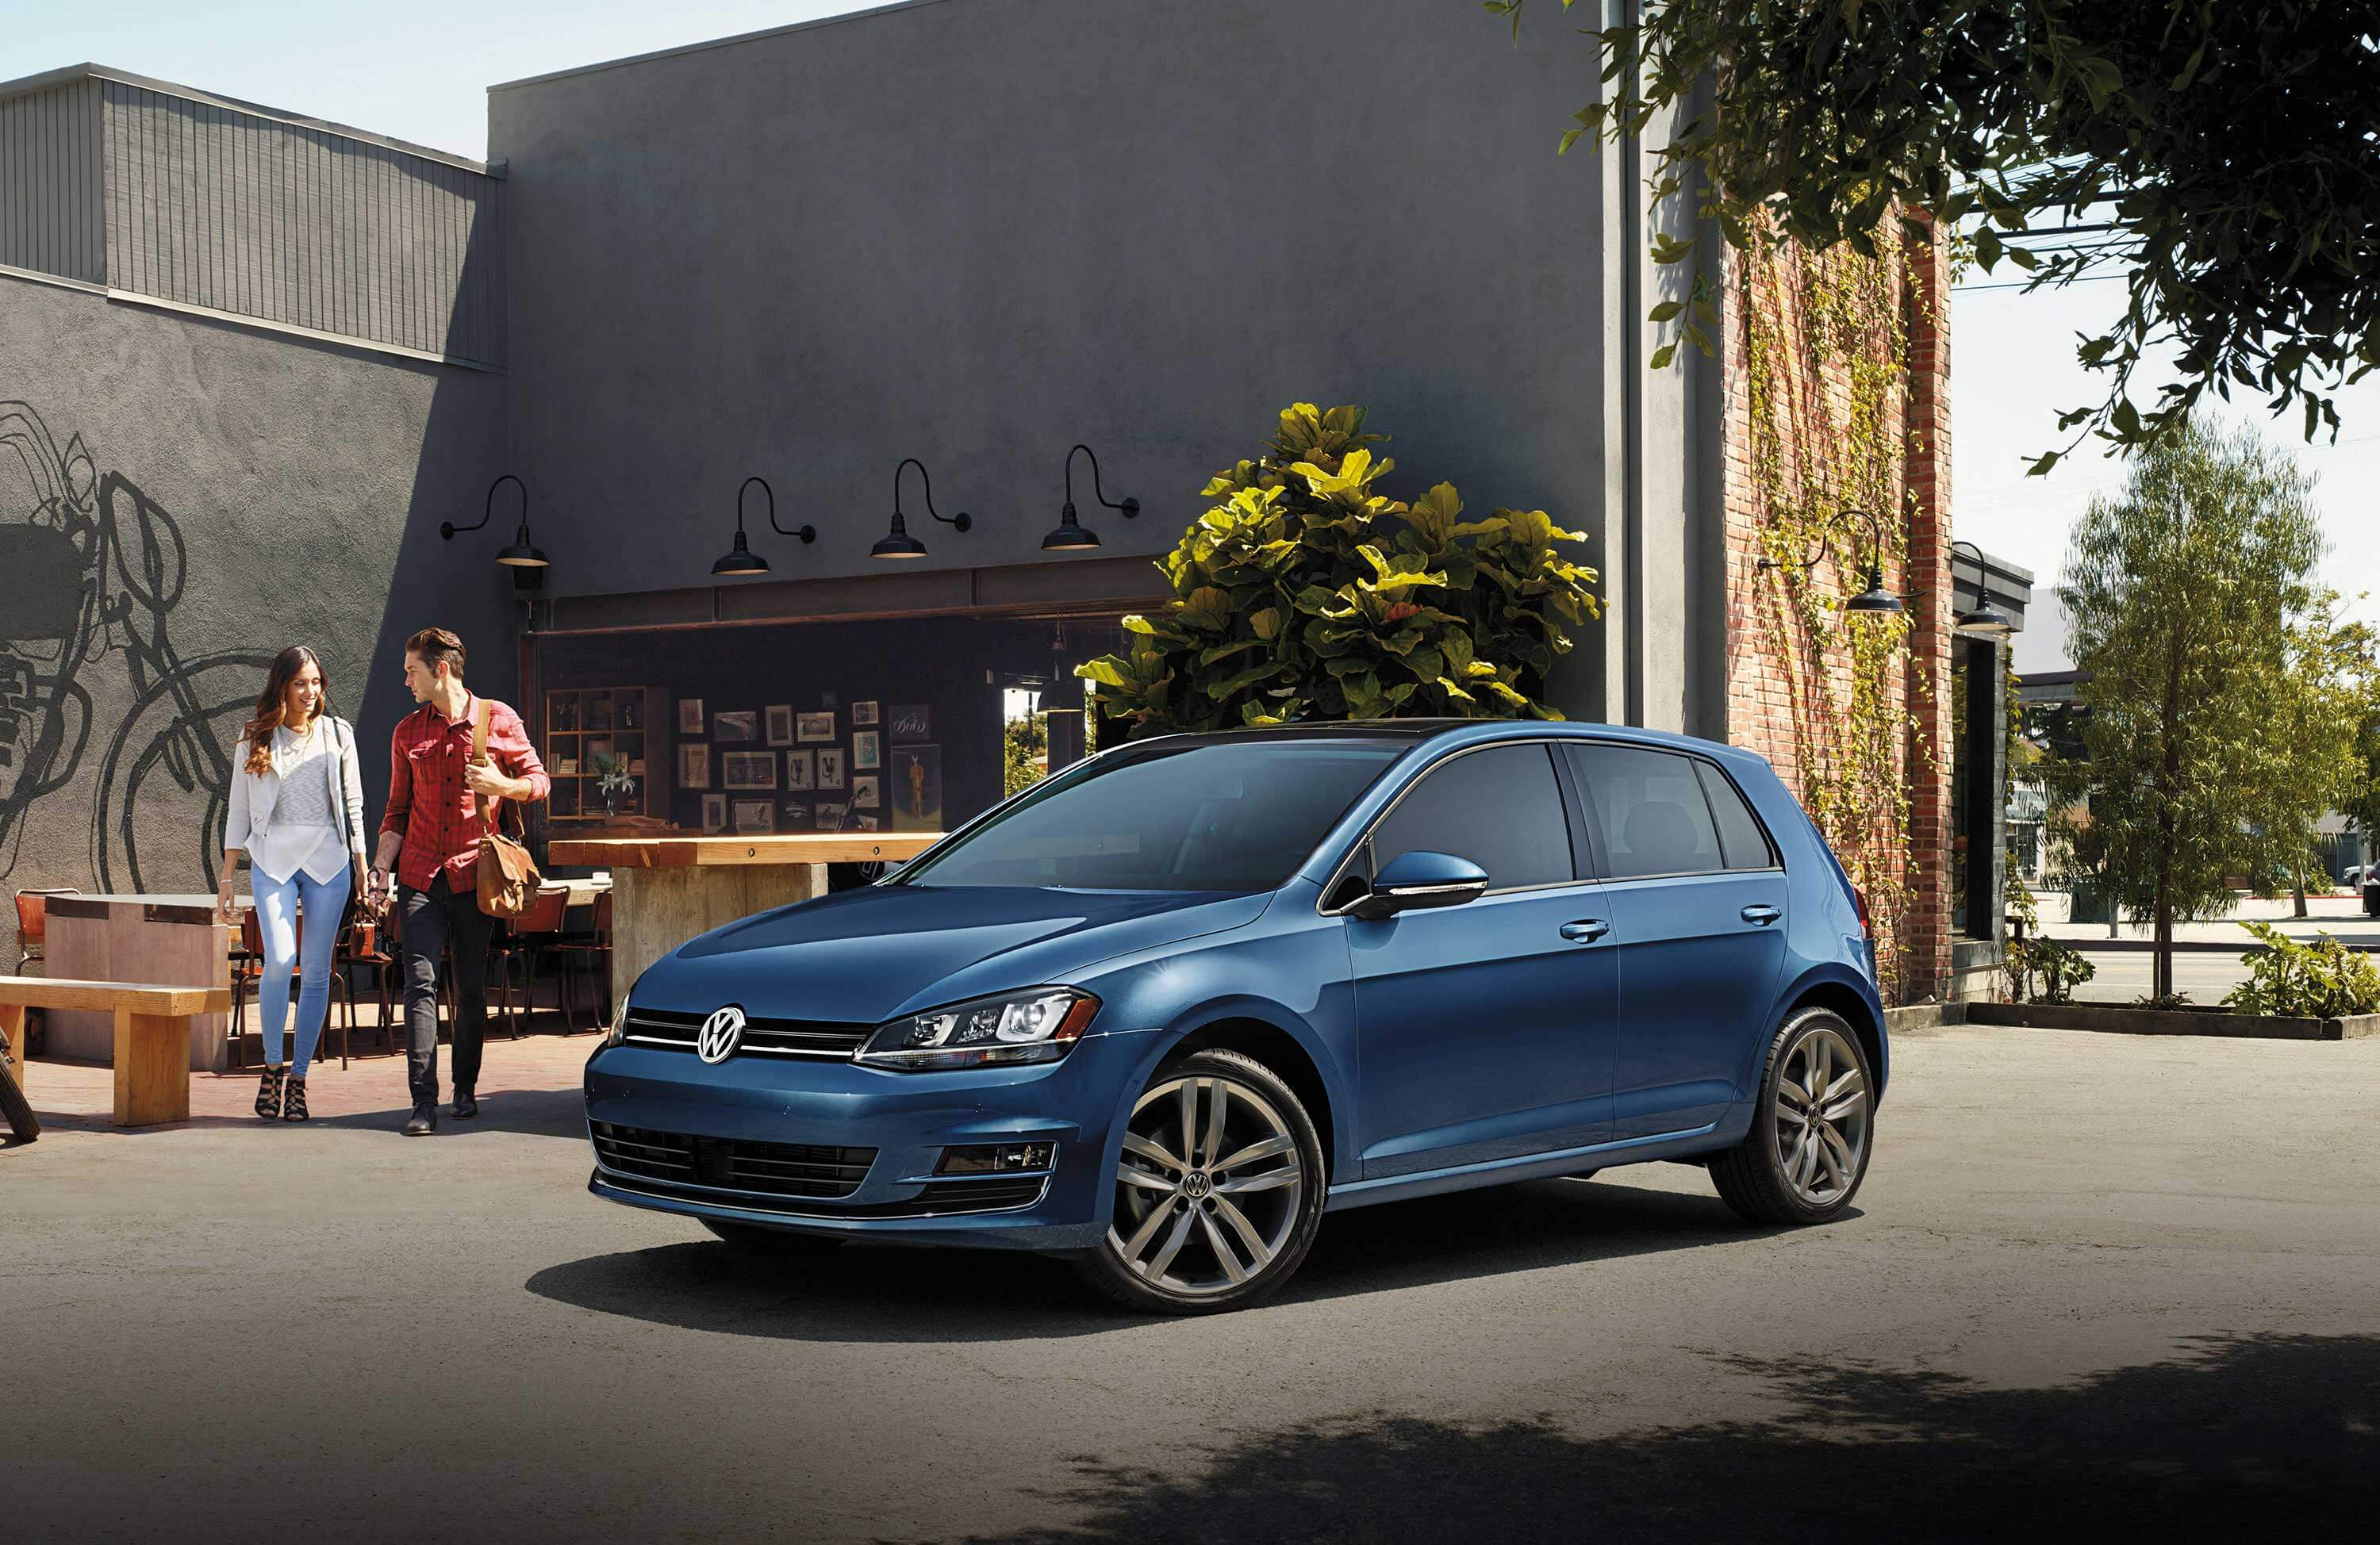 Volkswagen Golf Lease Deals & fers